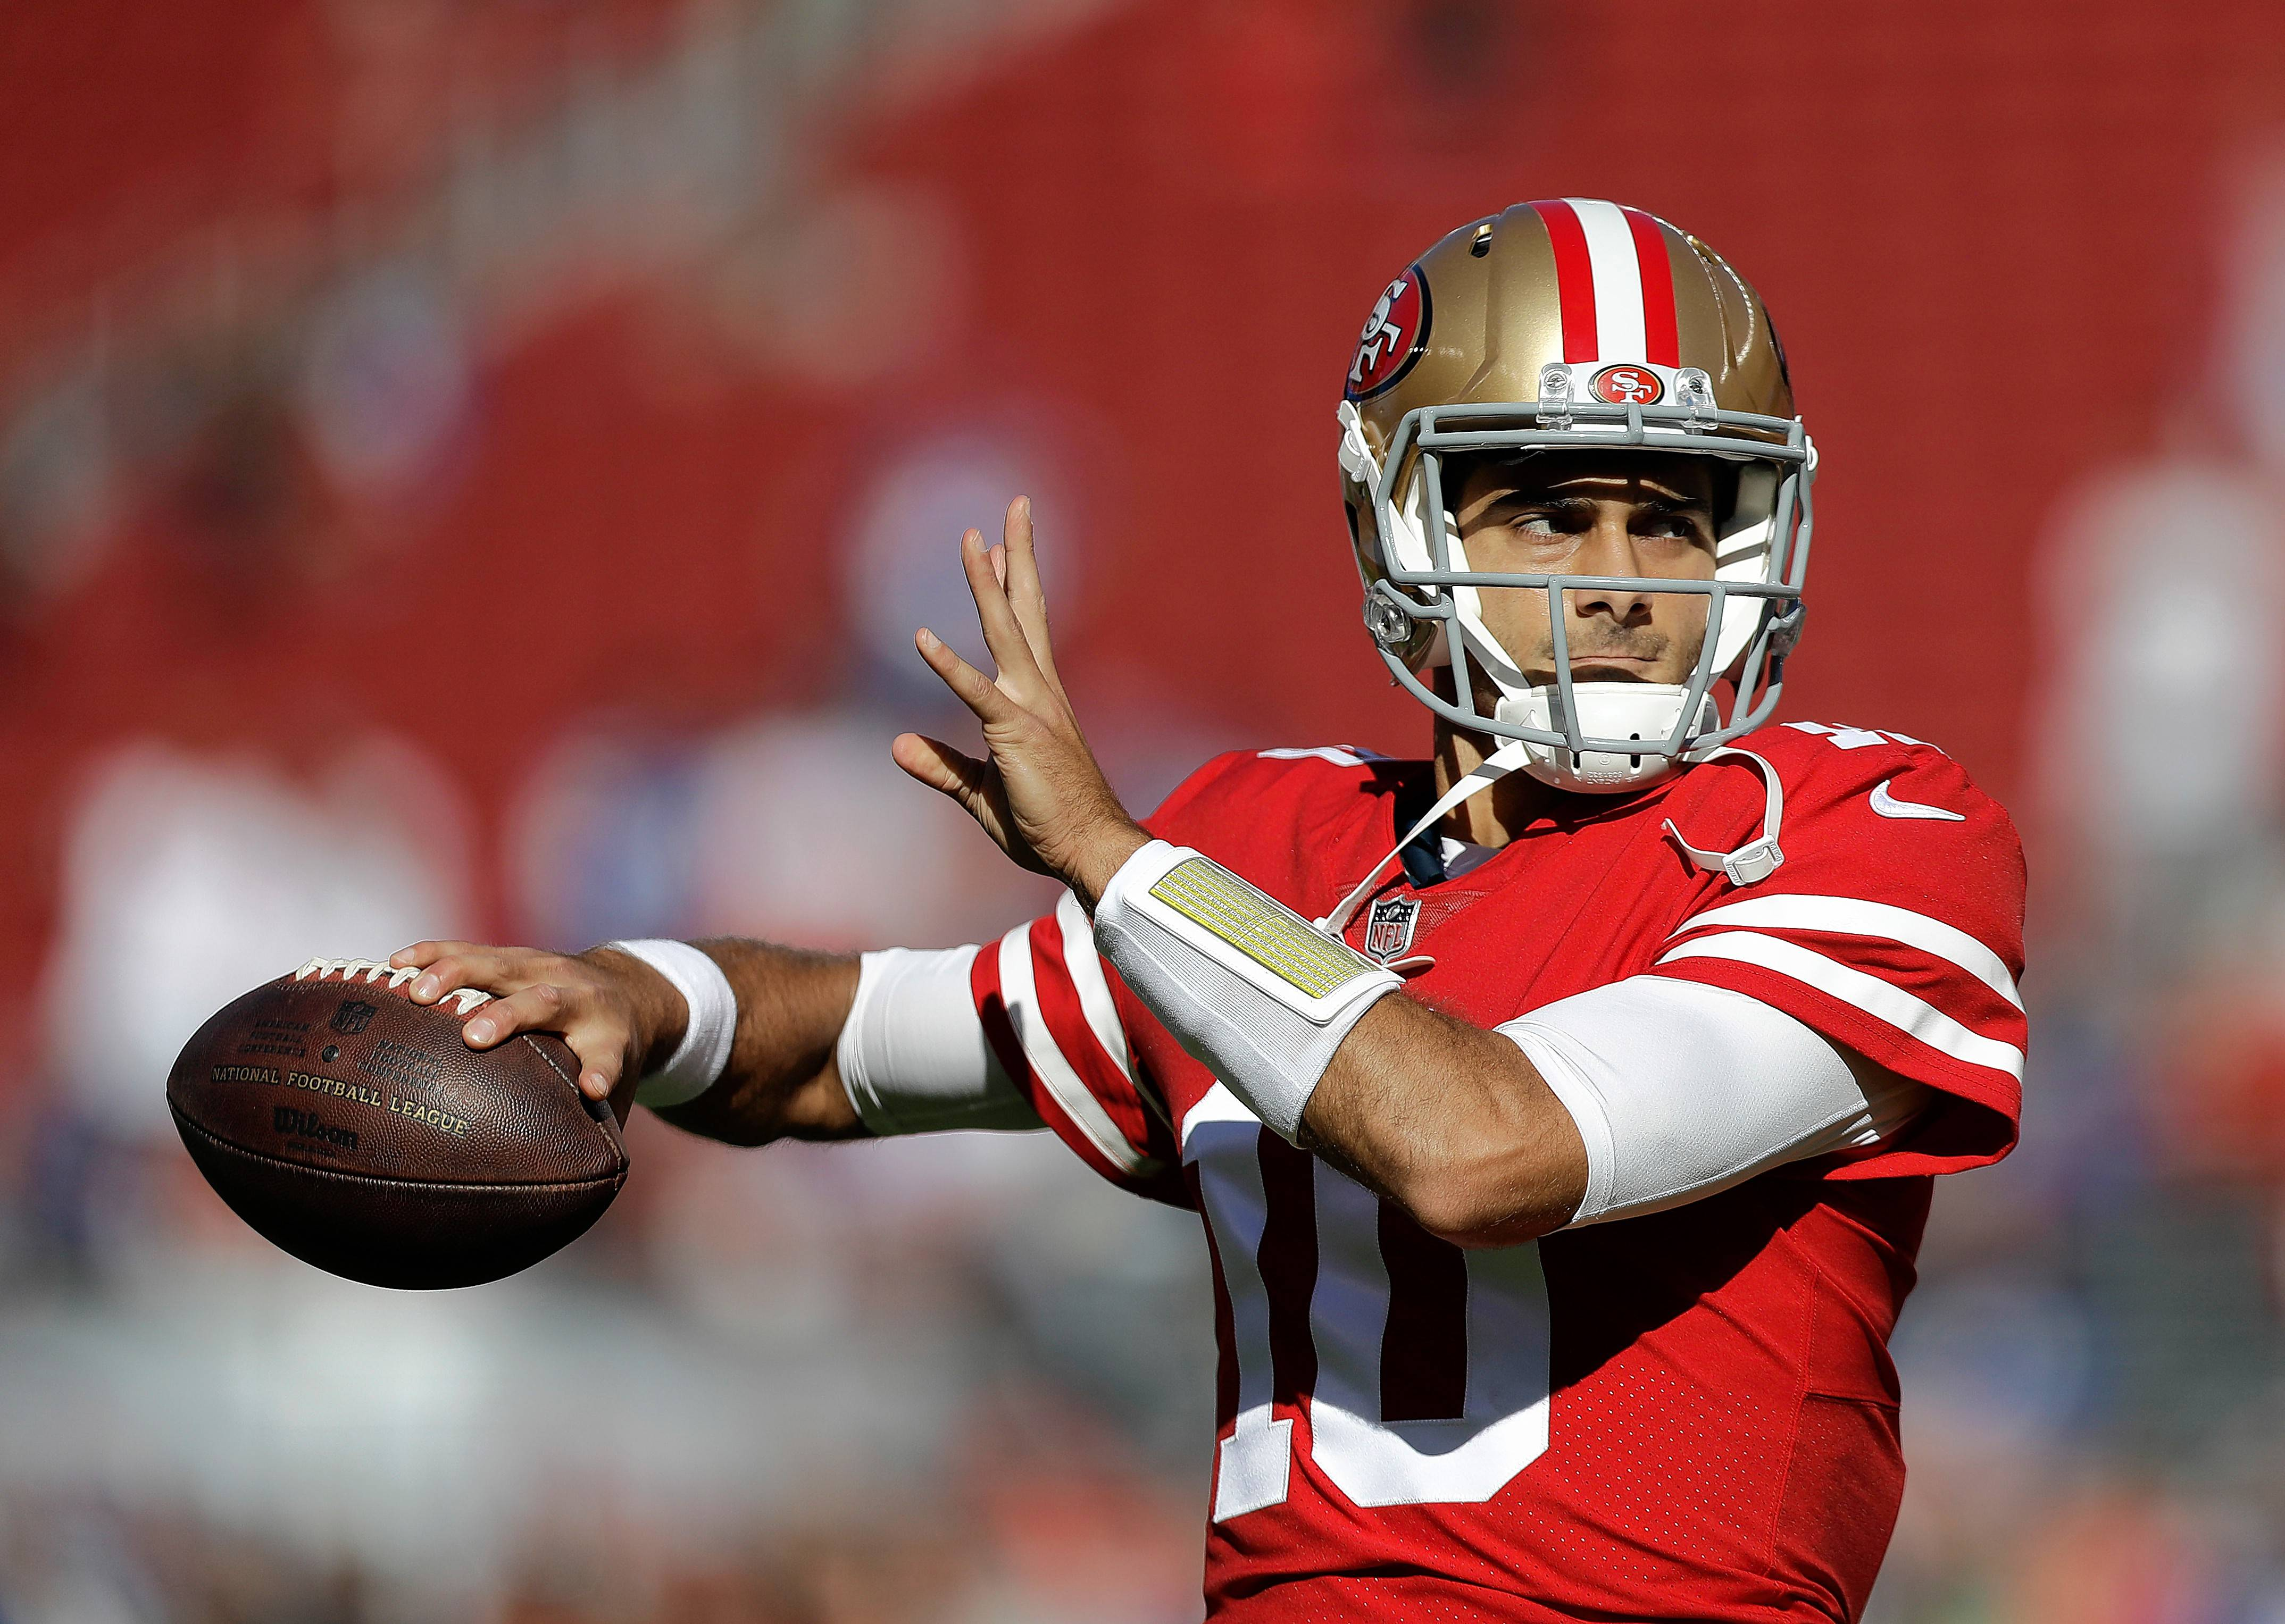 San Francisco quarterback Jimmy Garoppolo, a Rolling Meadows High School grad, could make his first start for the 49ers on Nov. 26 when they host Seattle.